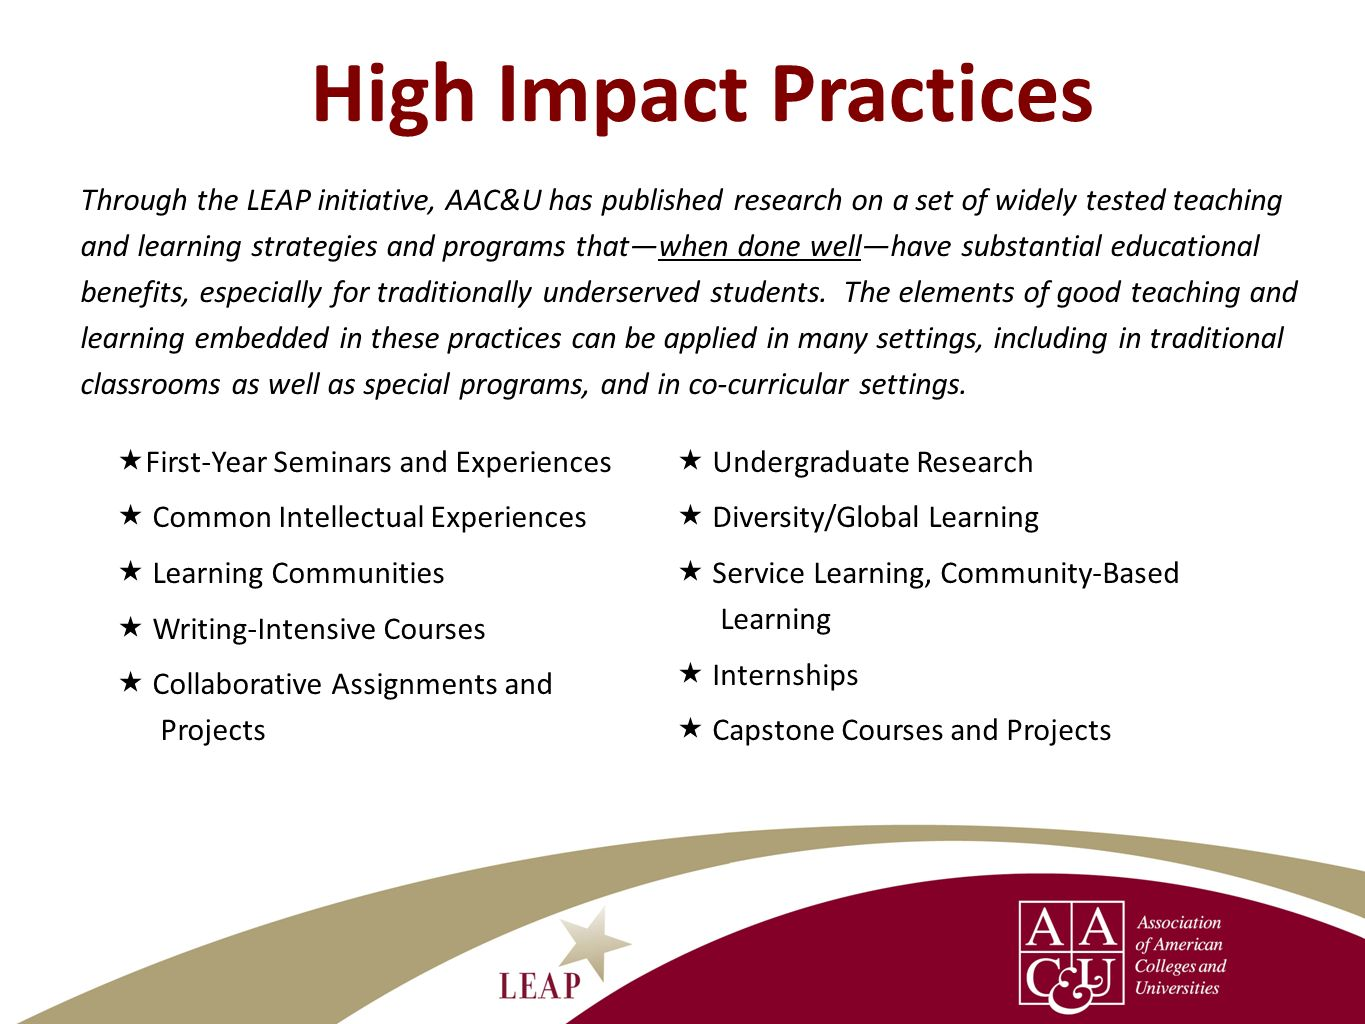 High Impact Practices Through the LEAP initiative, AAC&U has published research on a set of widely tested teaching and learning strategies and program